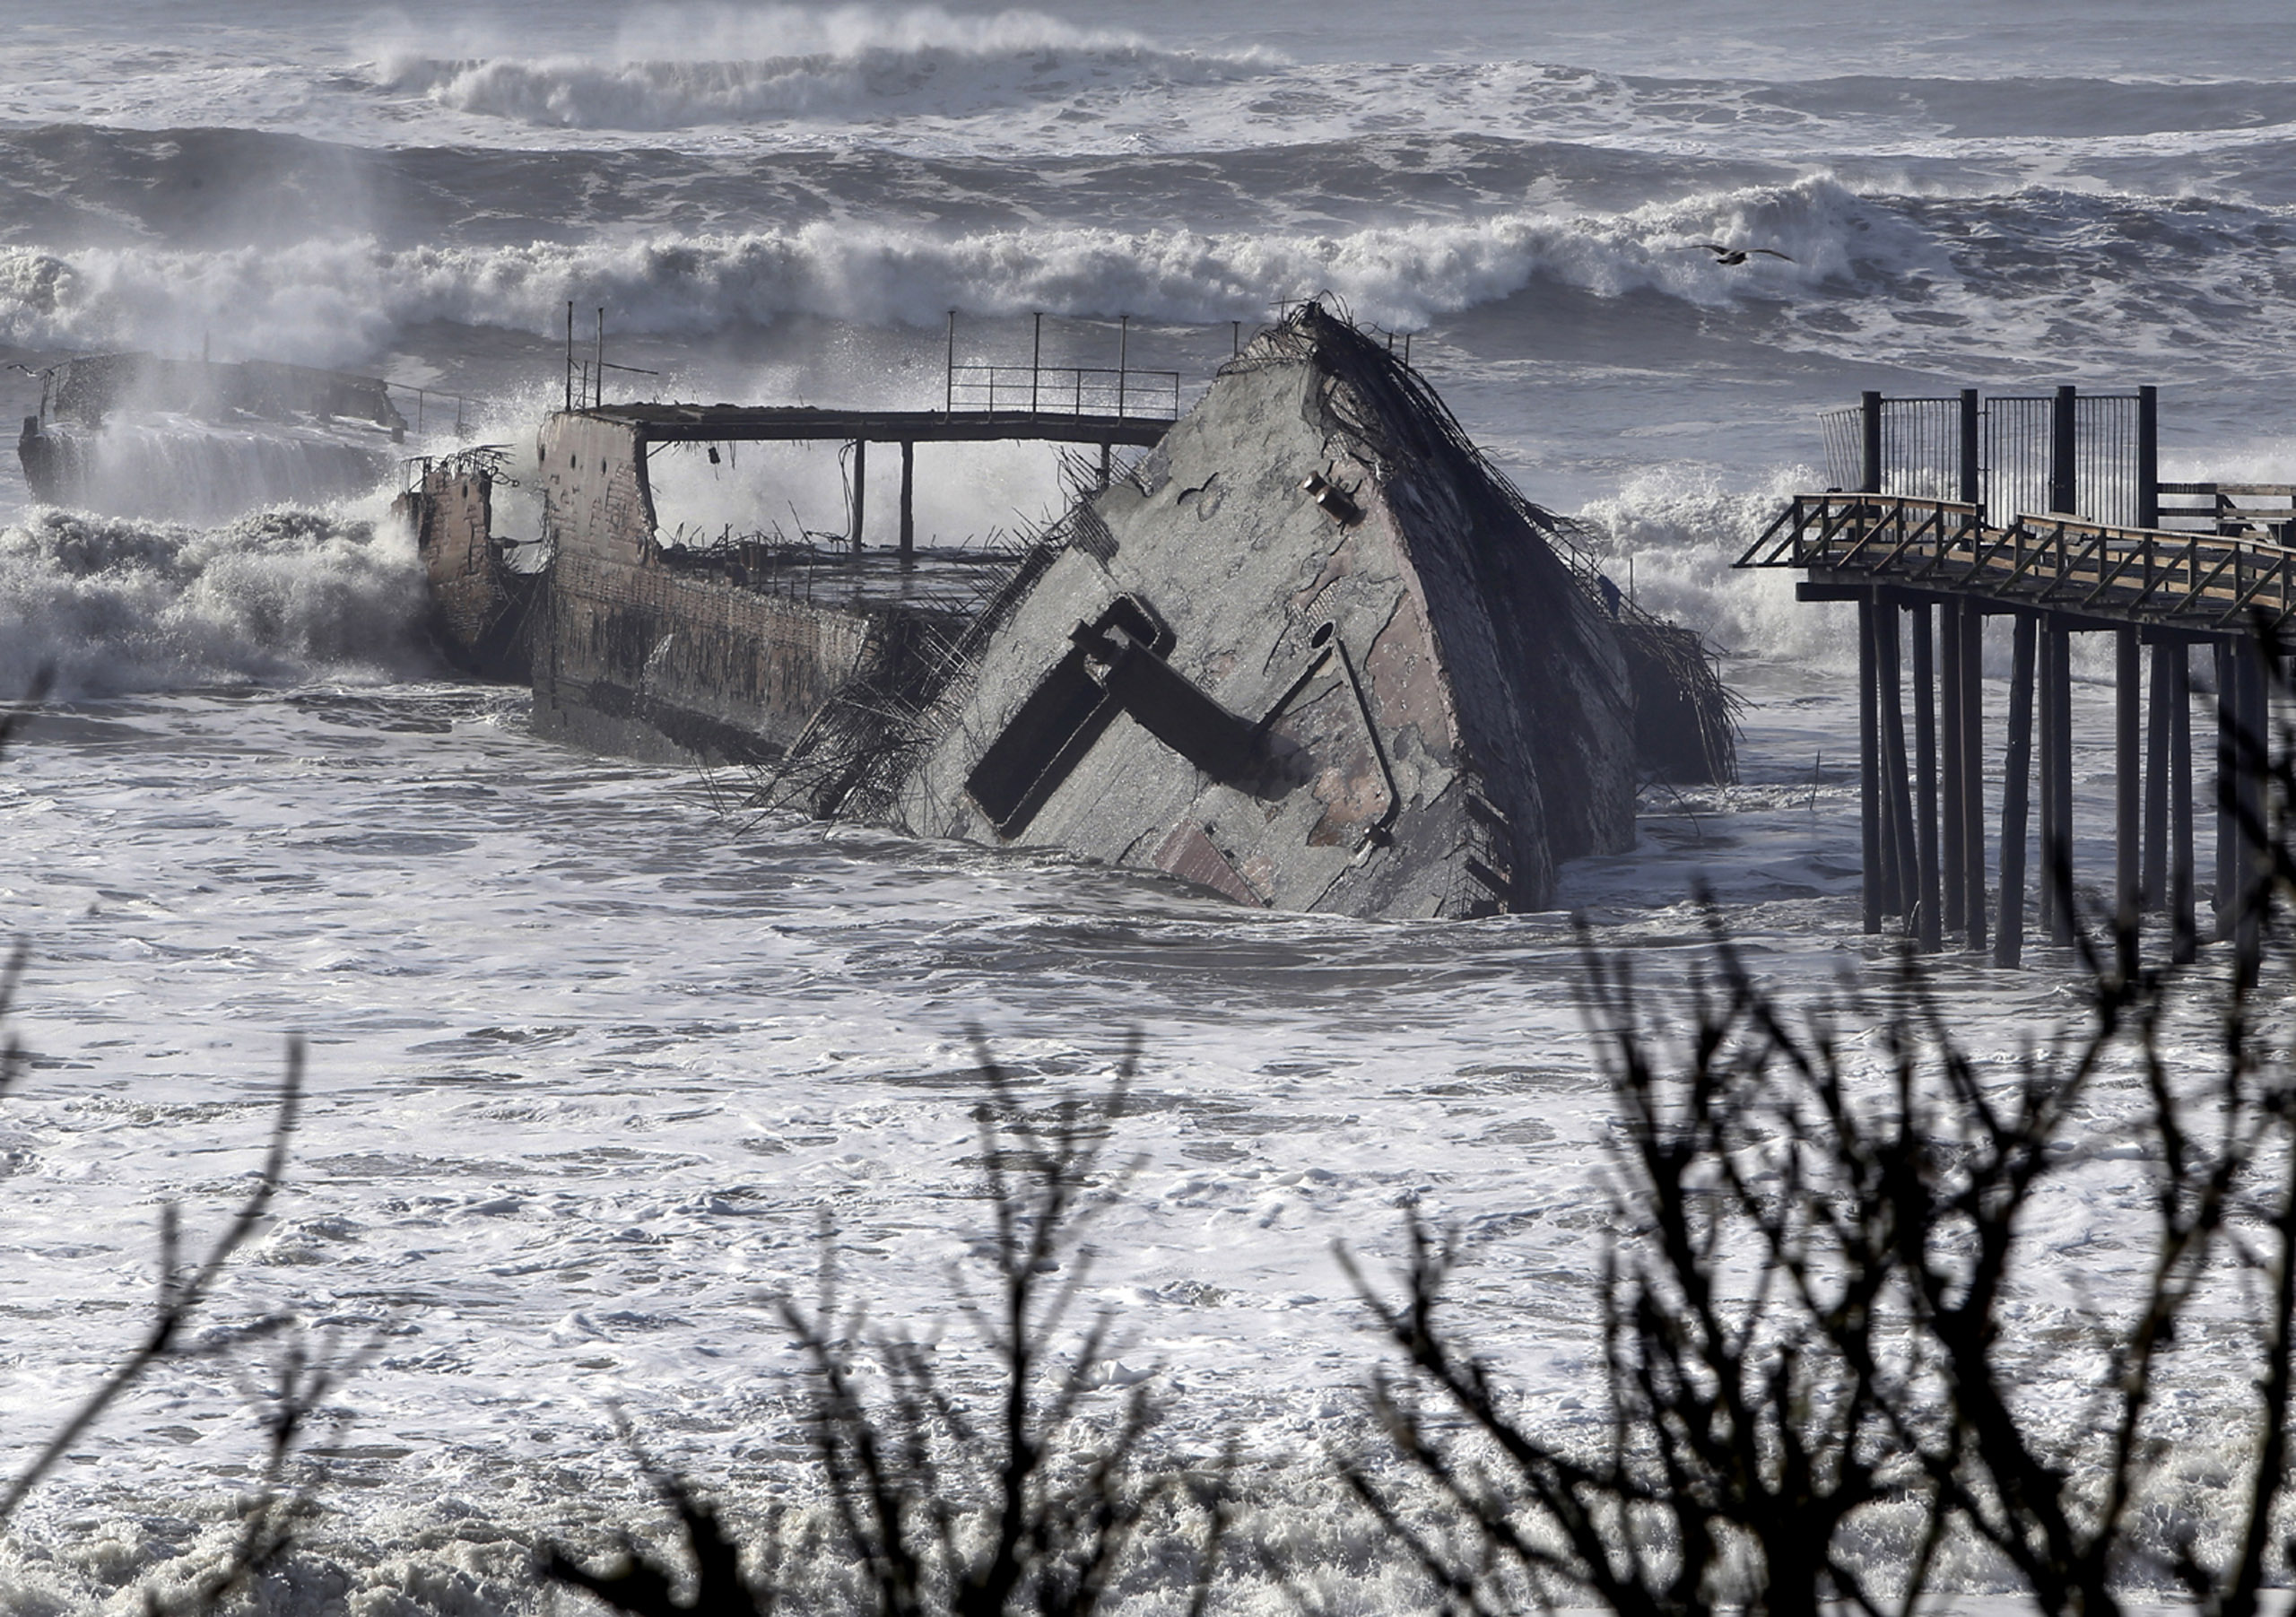 Waves crash into the historic WW1-era ship called S.S. Palo Alto at Rio Del Mar in Aptos, Calif., on Jan. 21, 2017.